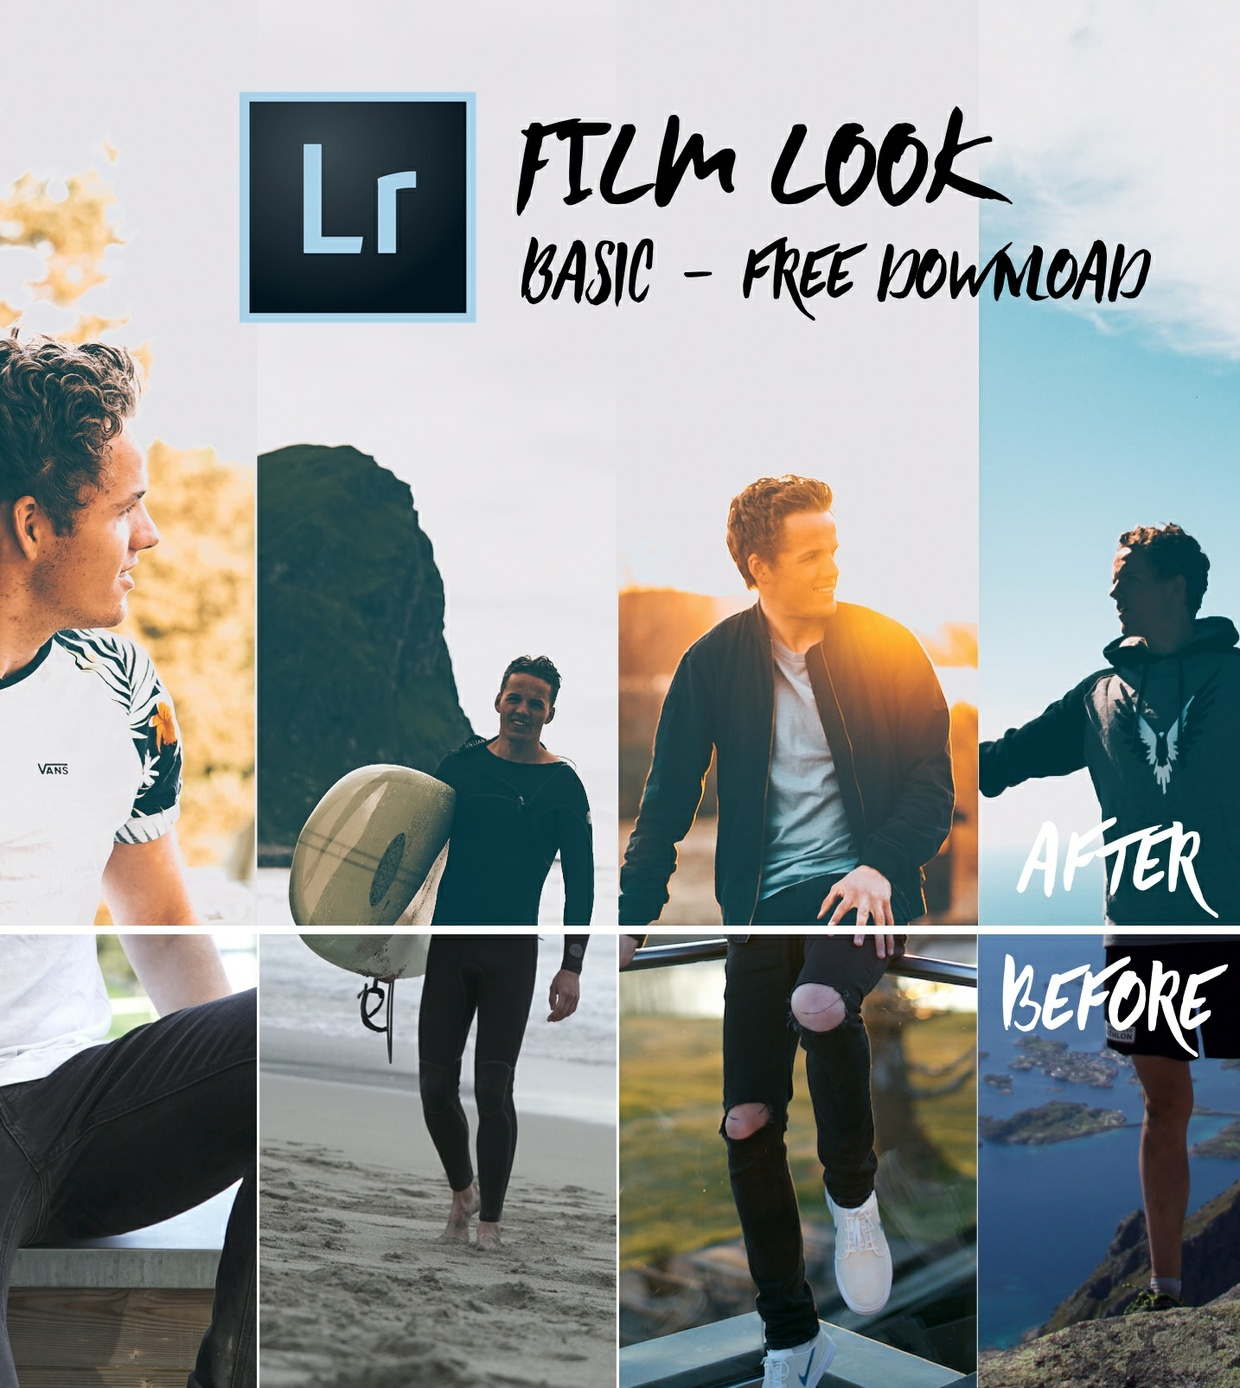 FILM LOOK BASIC - 5 Lightroom Smart Presets // FREE DOWNLOAD